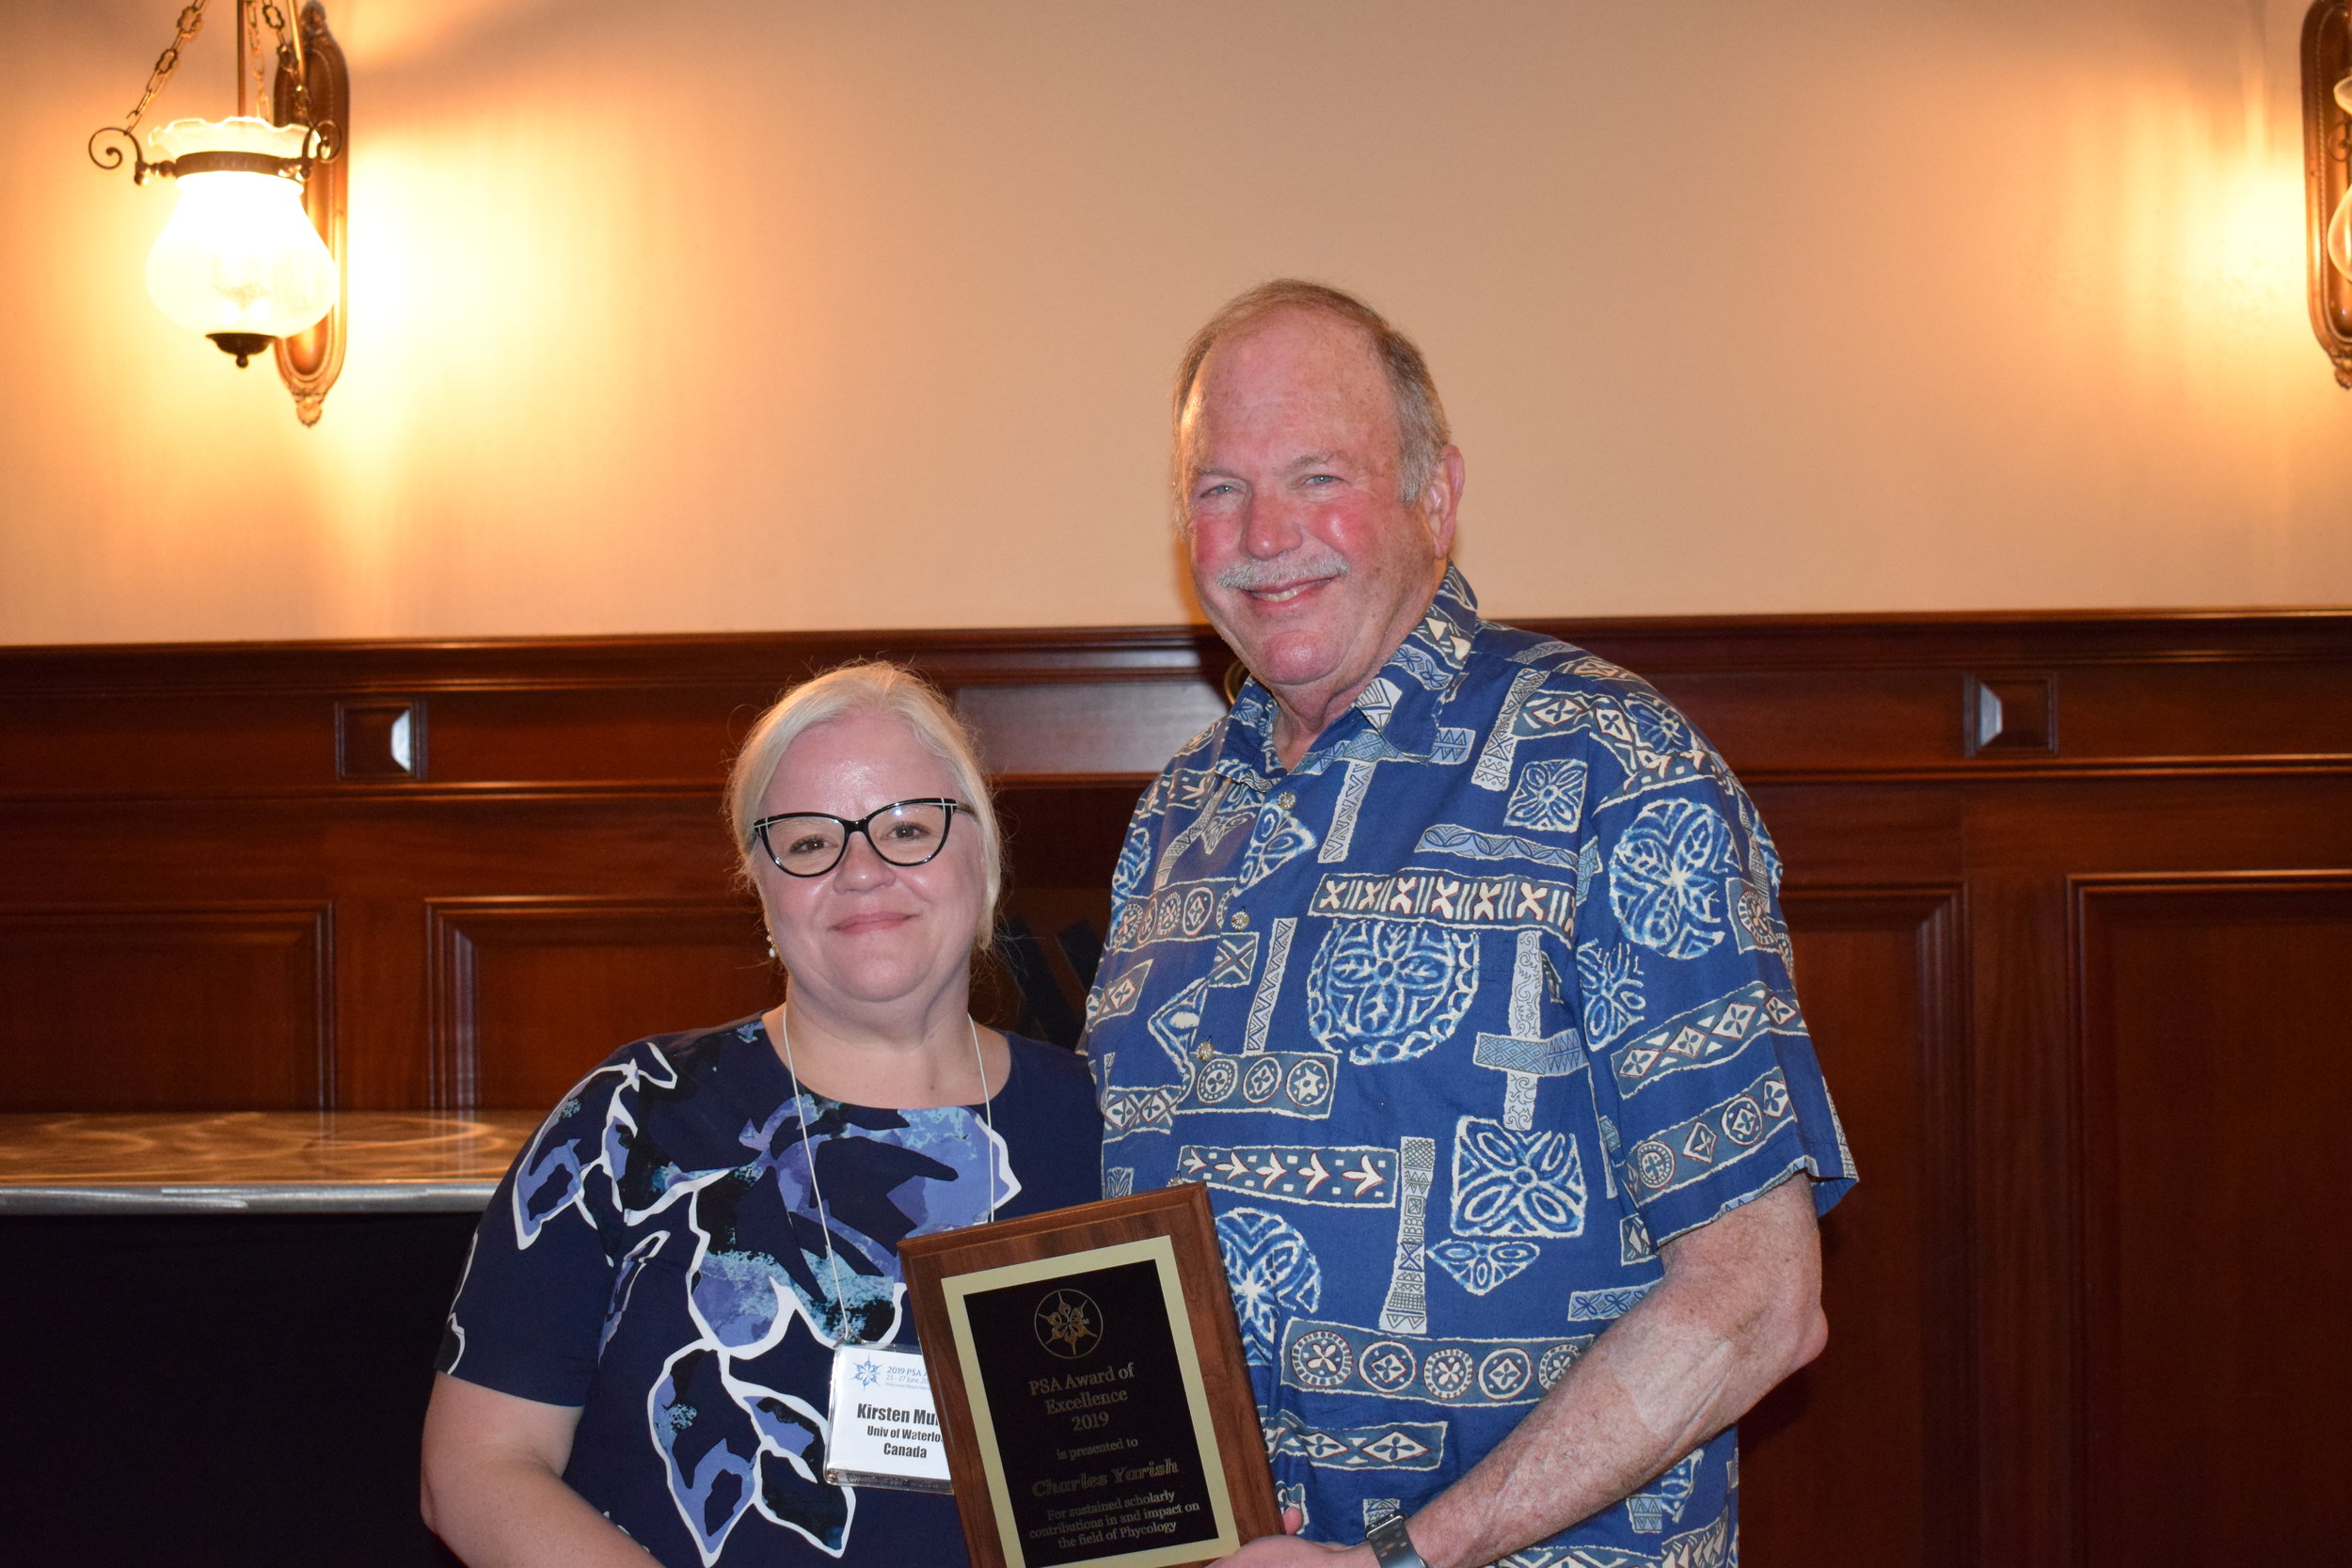 Charles Yarish (right) at the 2019 PSA annual meeting receiving the award from PSA President Kirsten Müller (left)